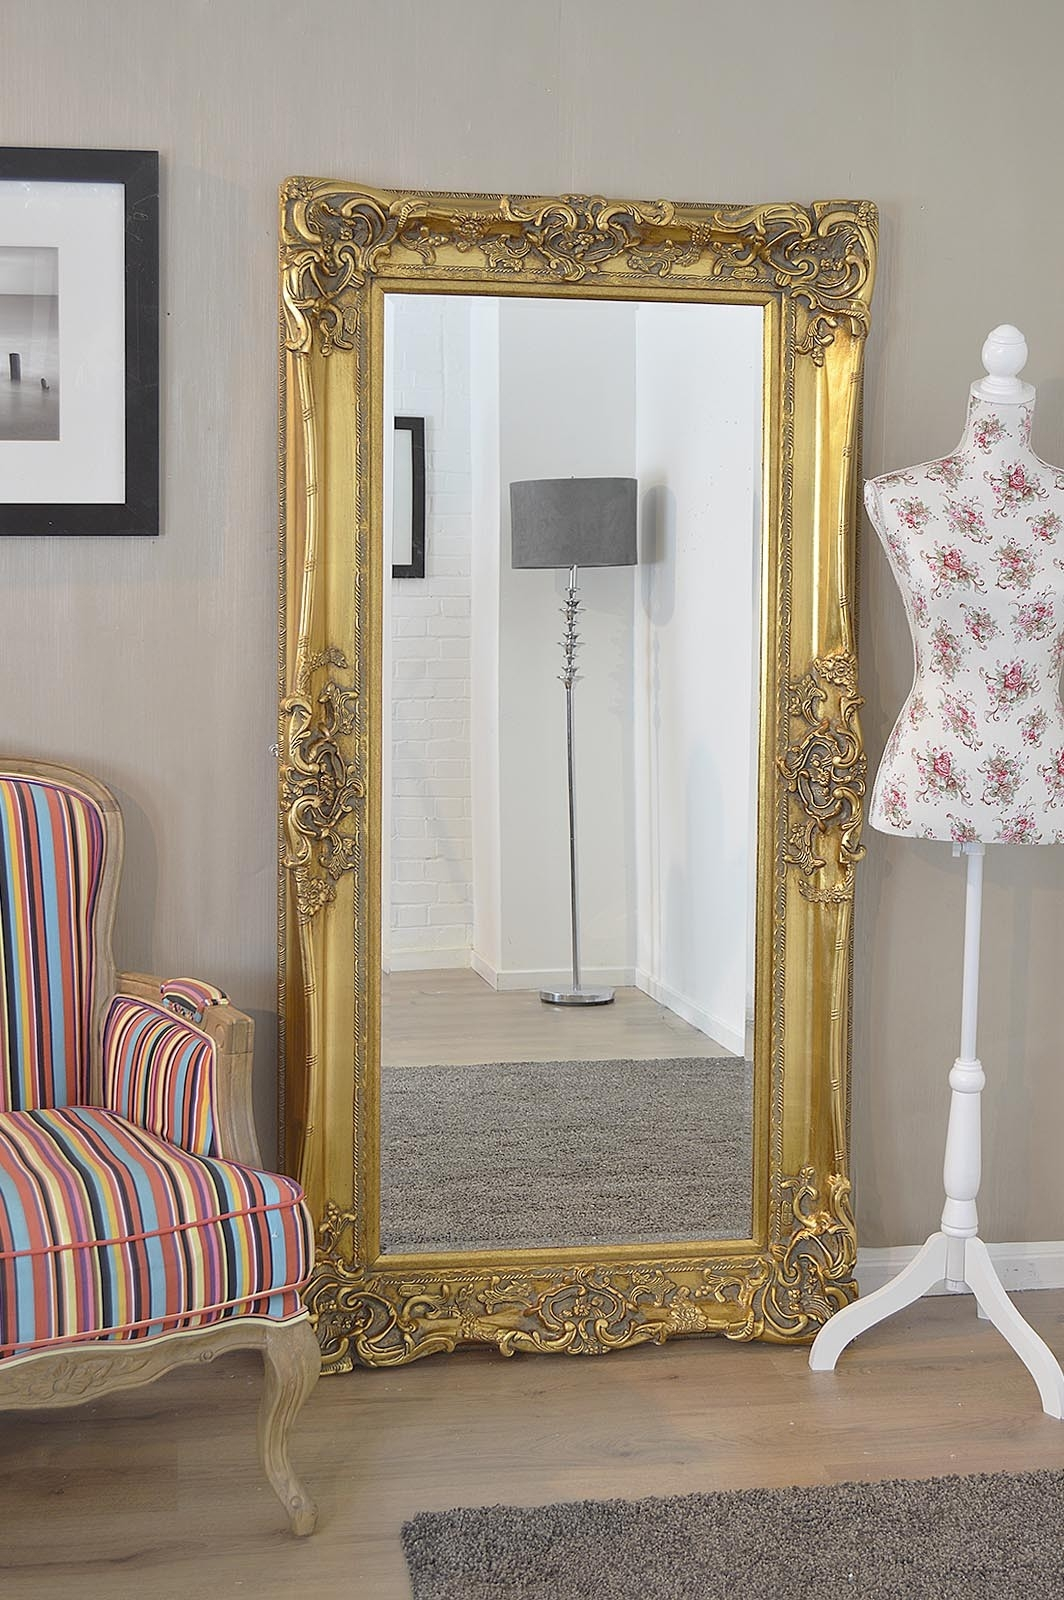 Large Mirror Large Gold Pebble Wall Mirror Abbey Gold Antique In Tall Ornate Mirror (Image 8 of 15)